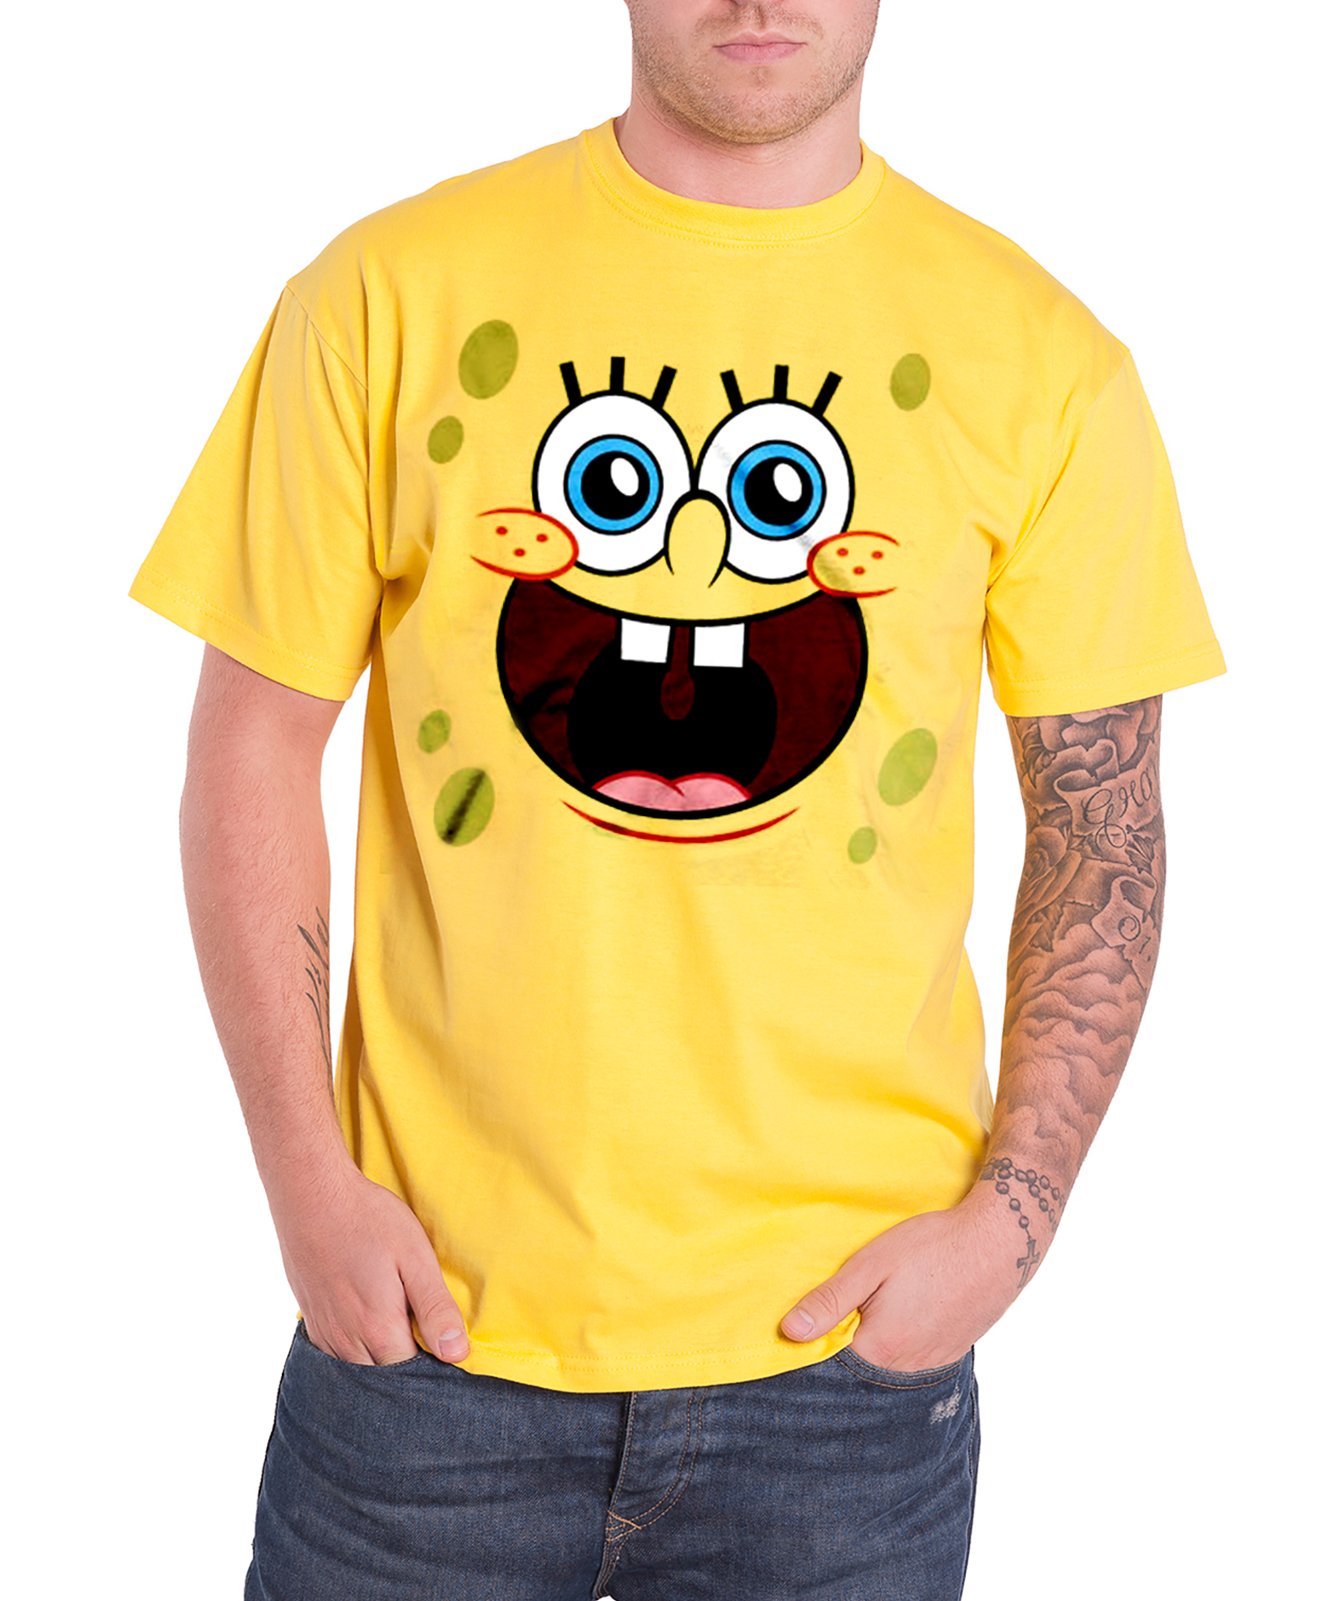 Each Spongebob T-shirt and hoodie is available in adult and children's sizes. Moreover, the new 'Best Friends' Spongebob T-shirt collection is here! This quirky collection of screened T-shirts comes in a variety of sizes and cuts for ladies and men as well as kids.